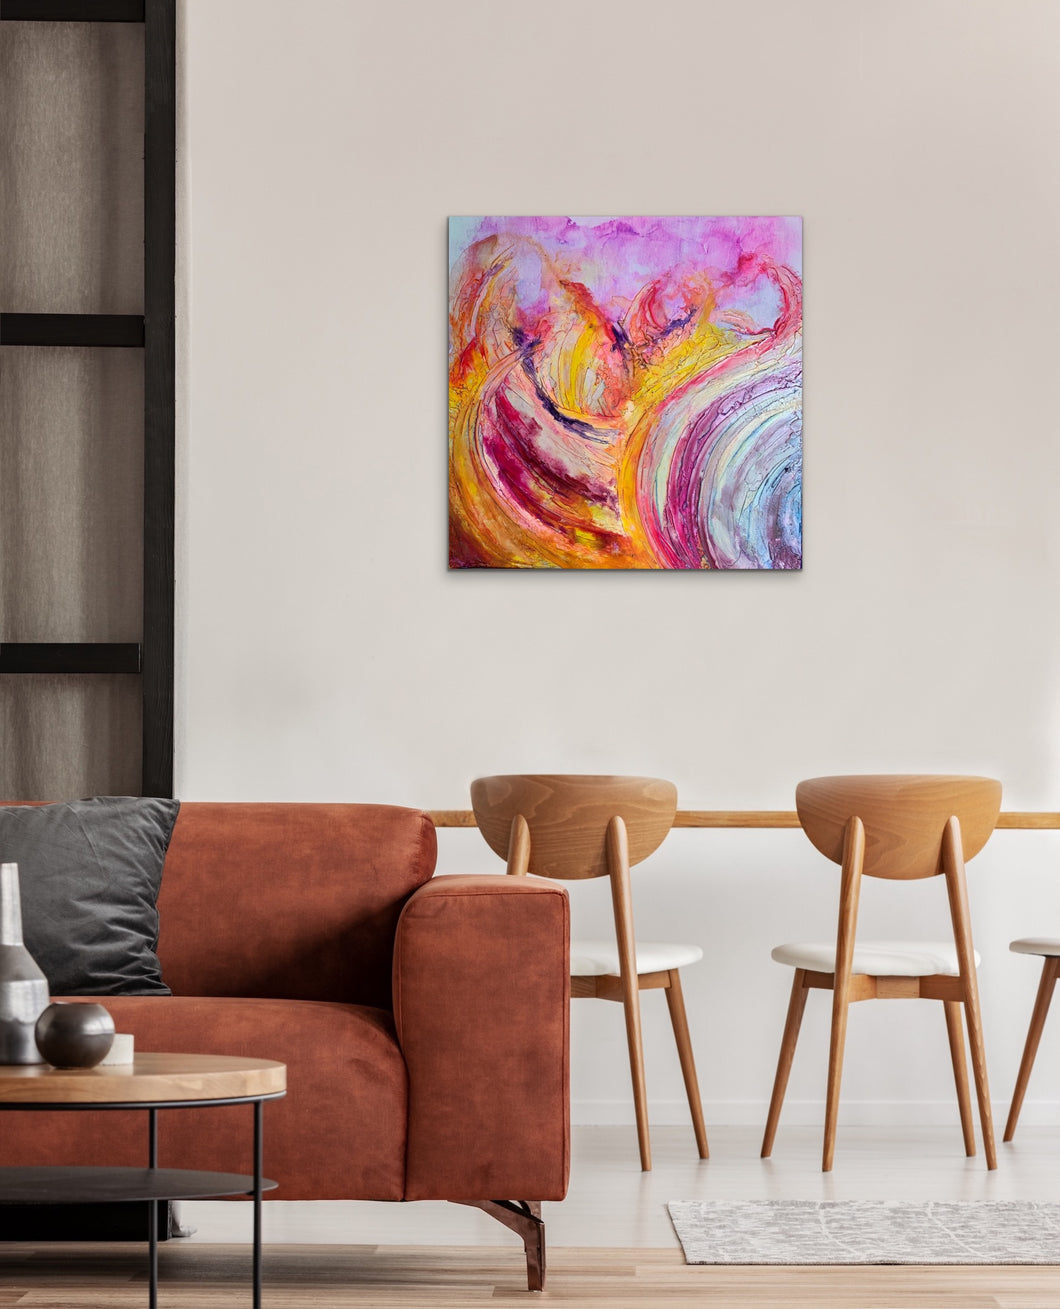 'In Turmoil' Abstract painting on canvas- Original abstract art - Wall art - Australian made art.